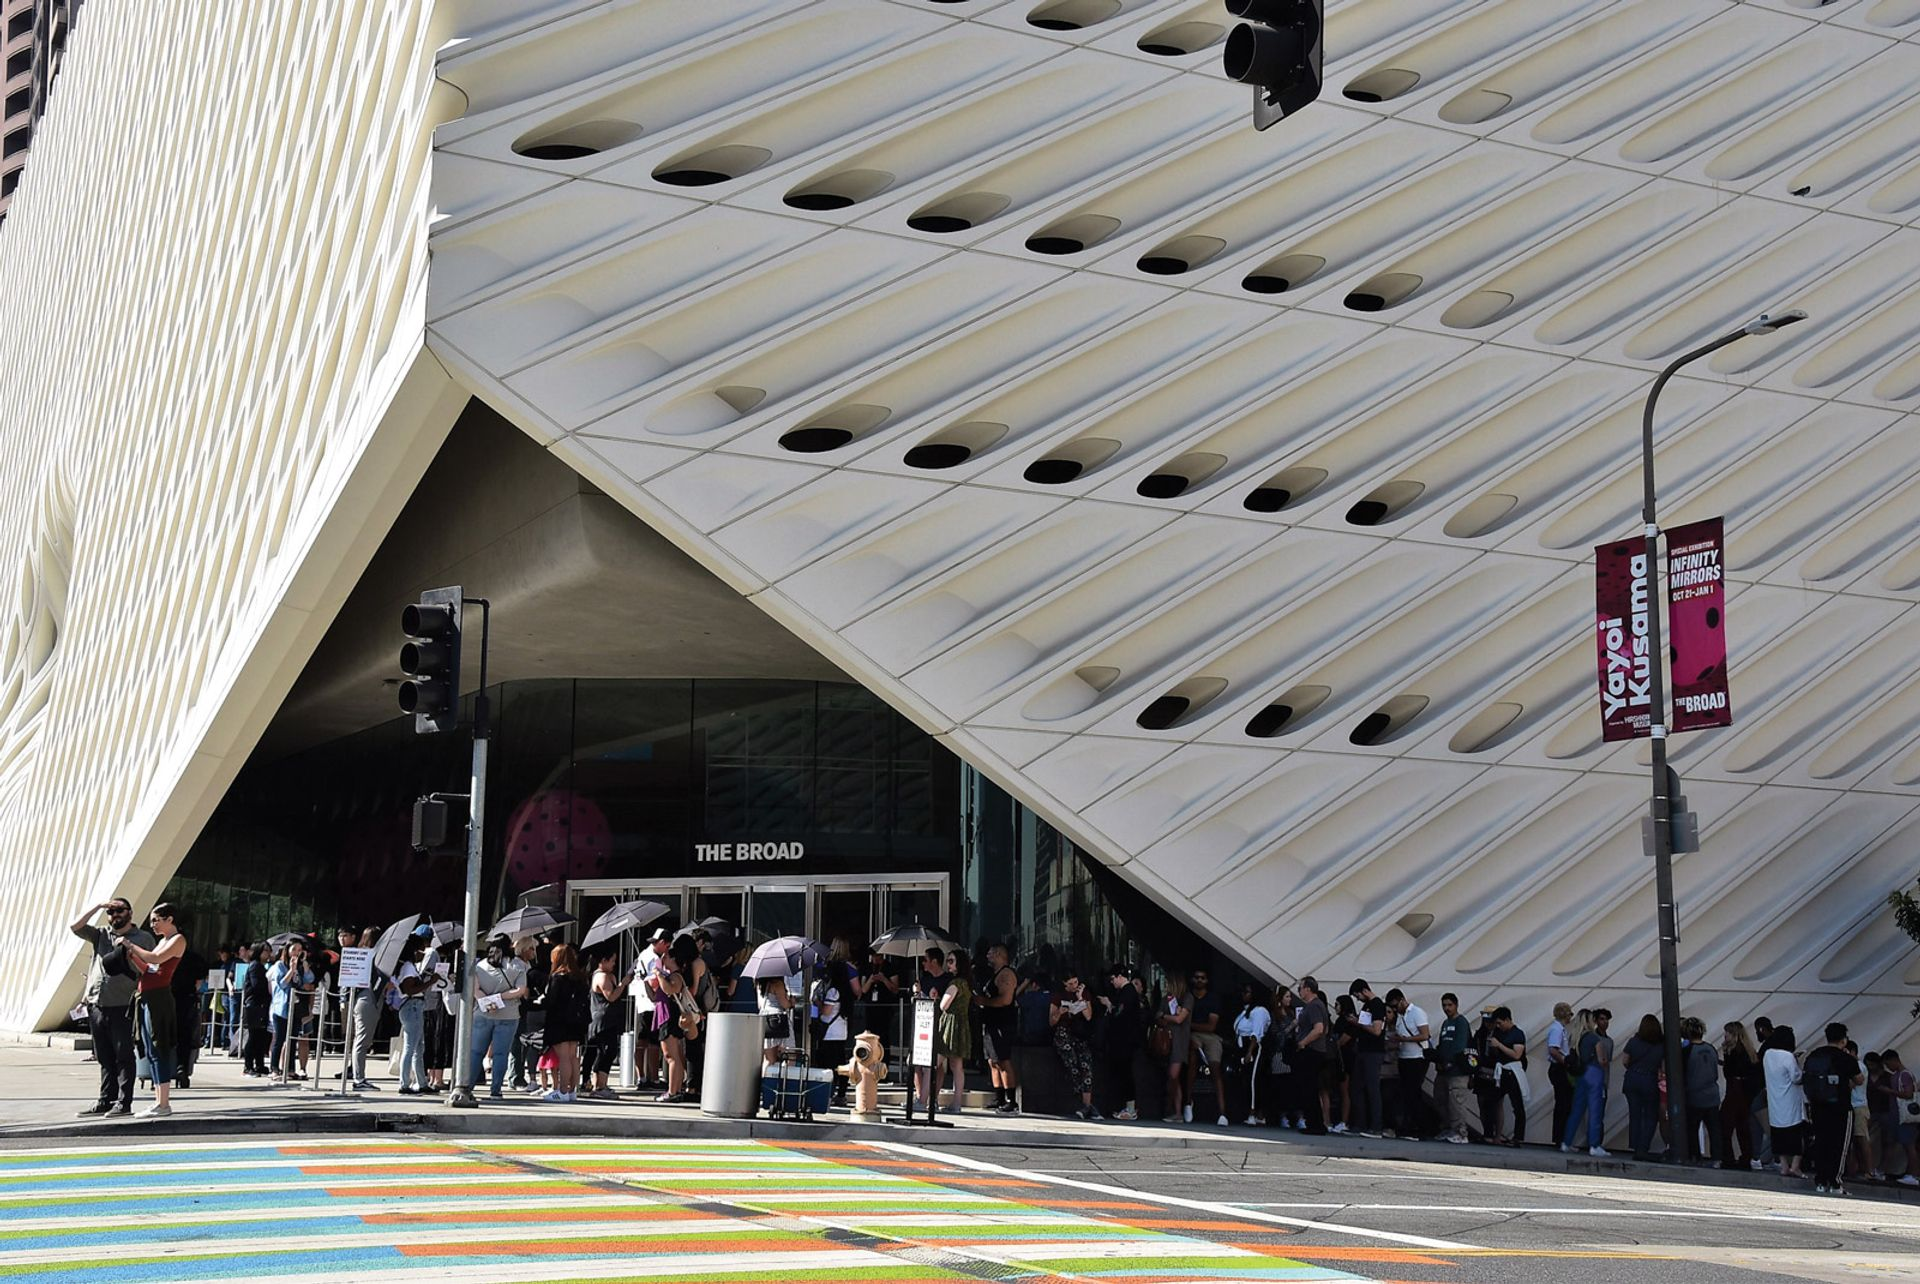 Queues snaking around the Broad, which has offered free general entry since it opened in 2015; visitor numbers have steadily increased from around 750,000 in its first full year to more than 900,000 in 2019 Kyodo News/Getty Images